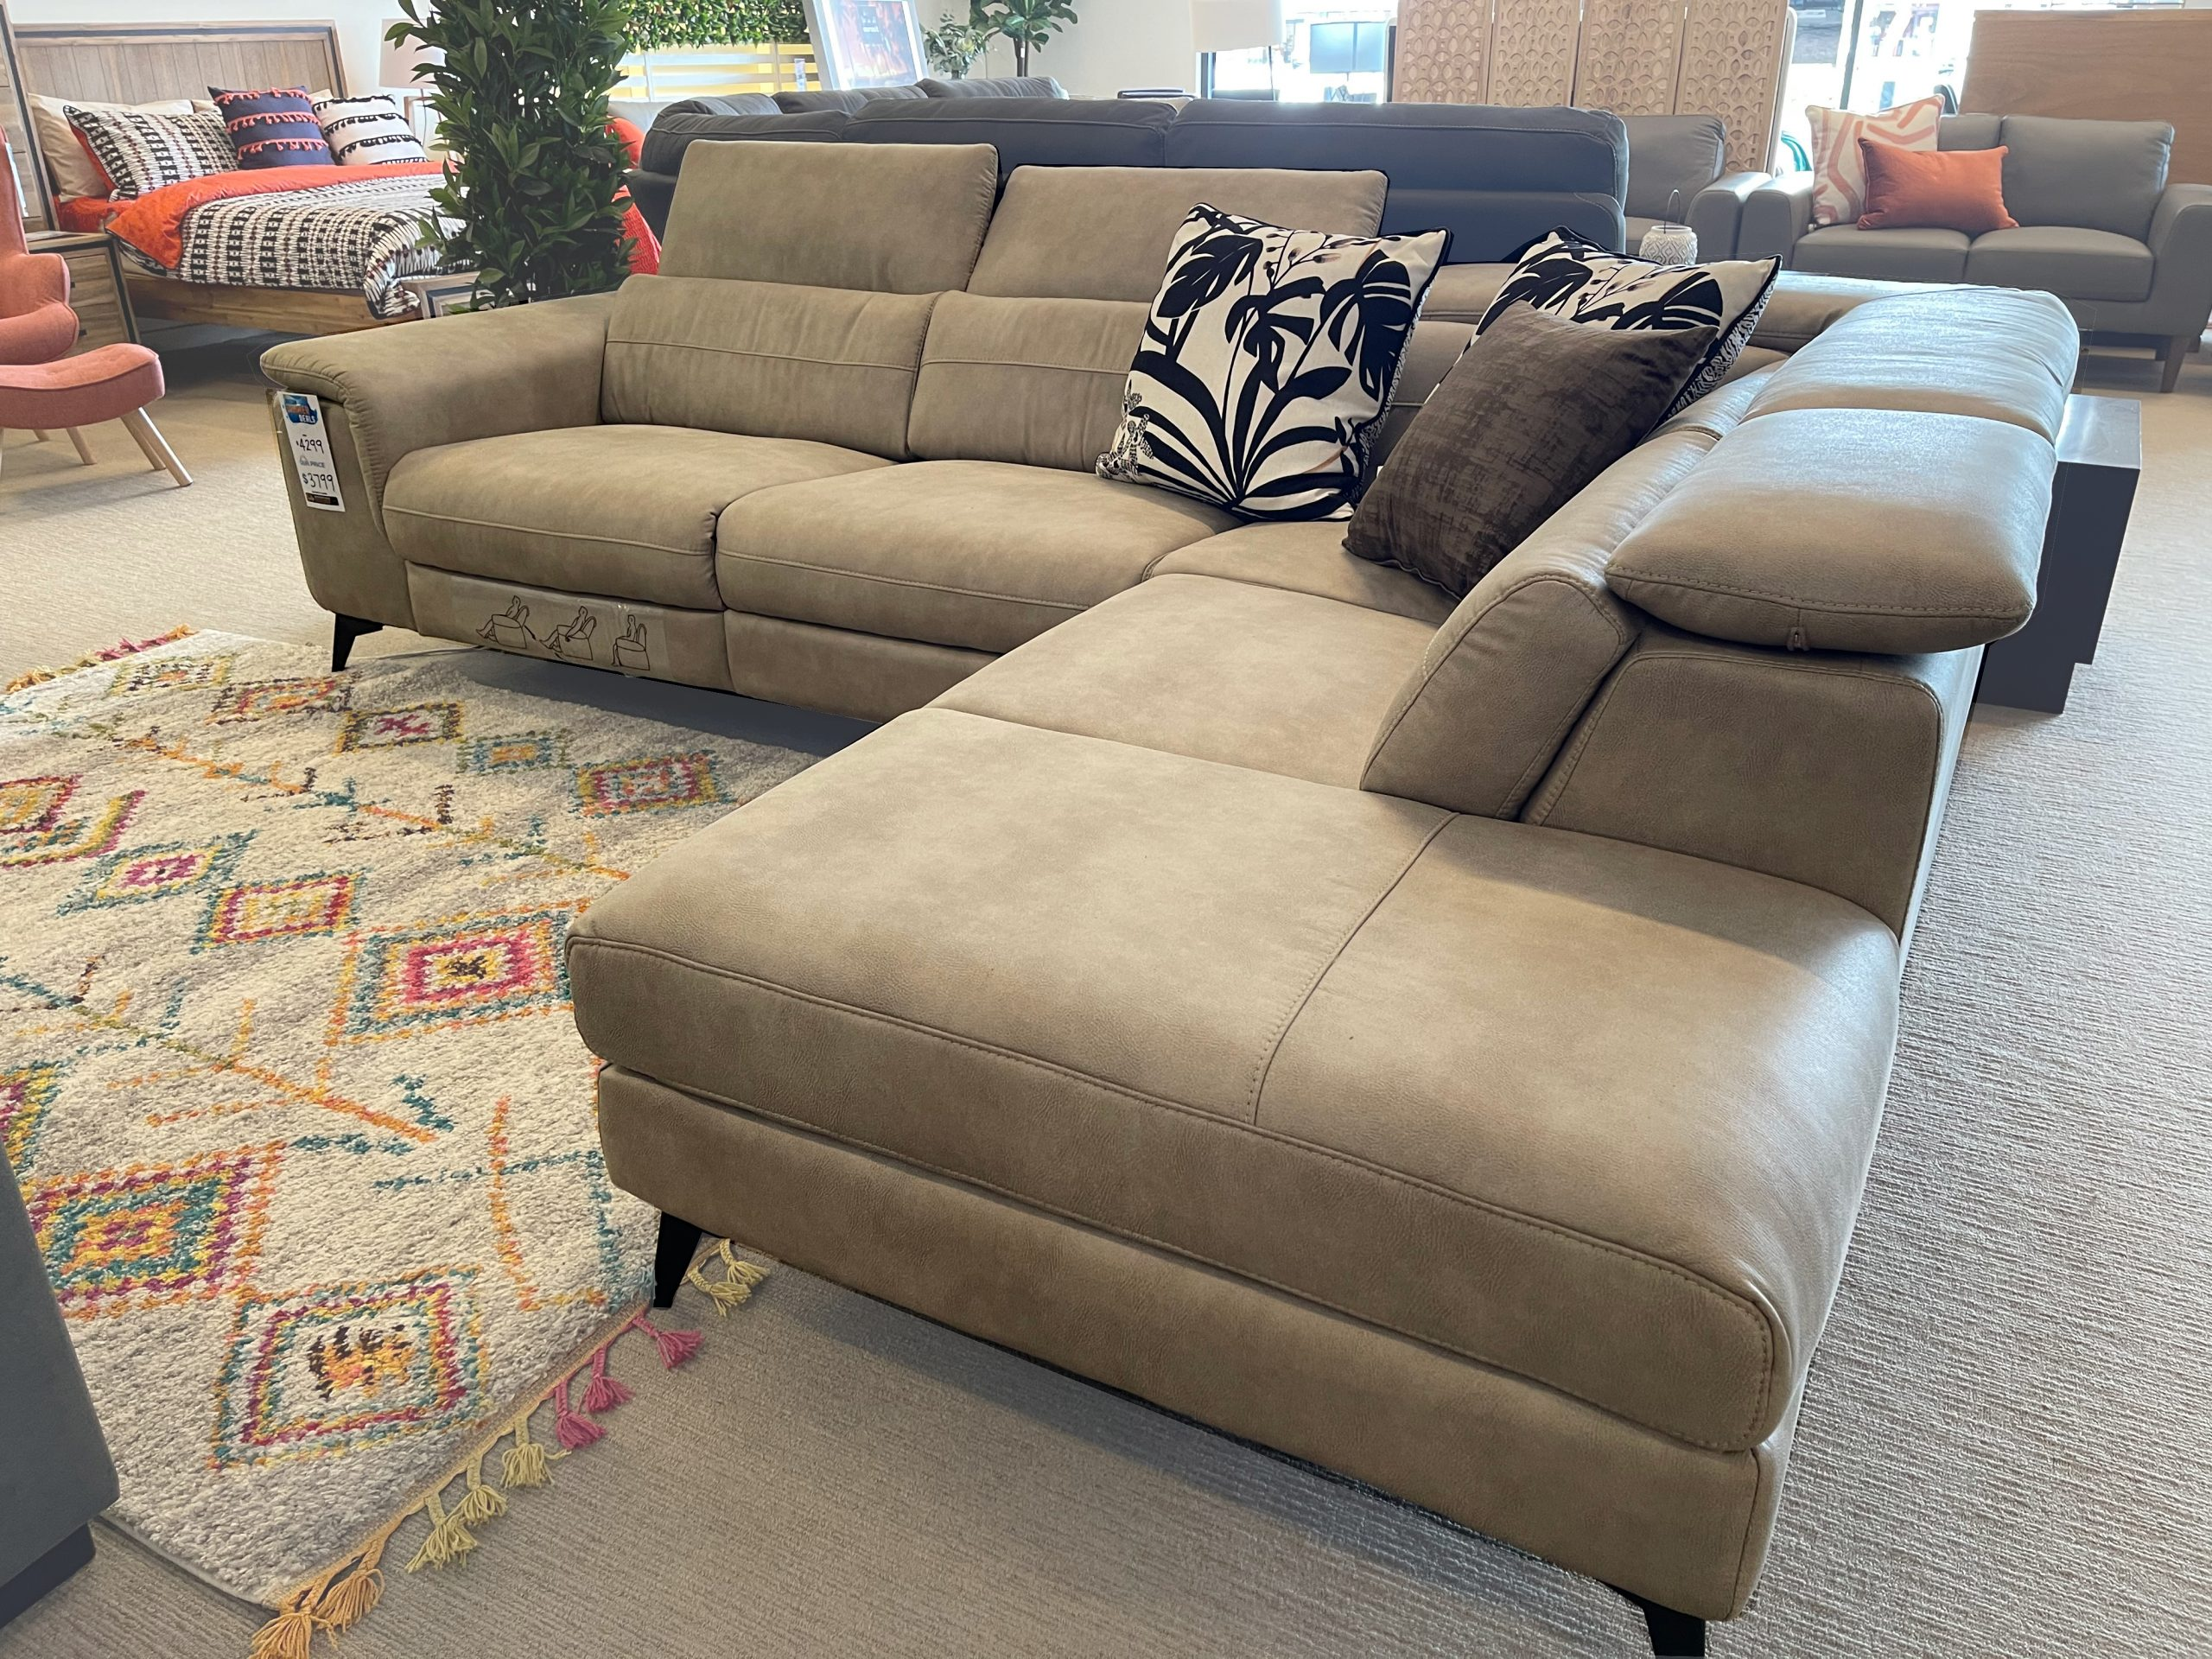 Best Furniture Adelaide Stores